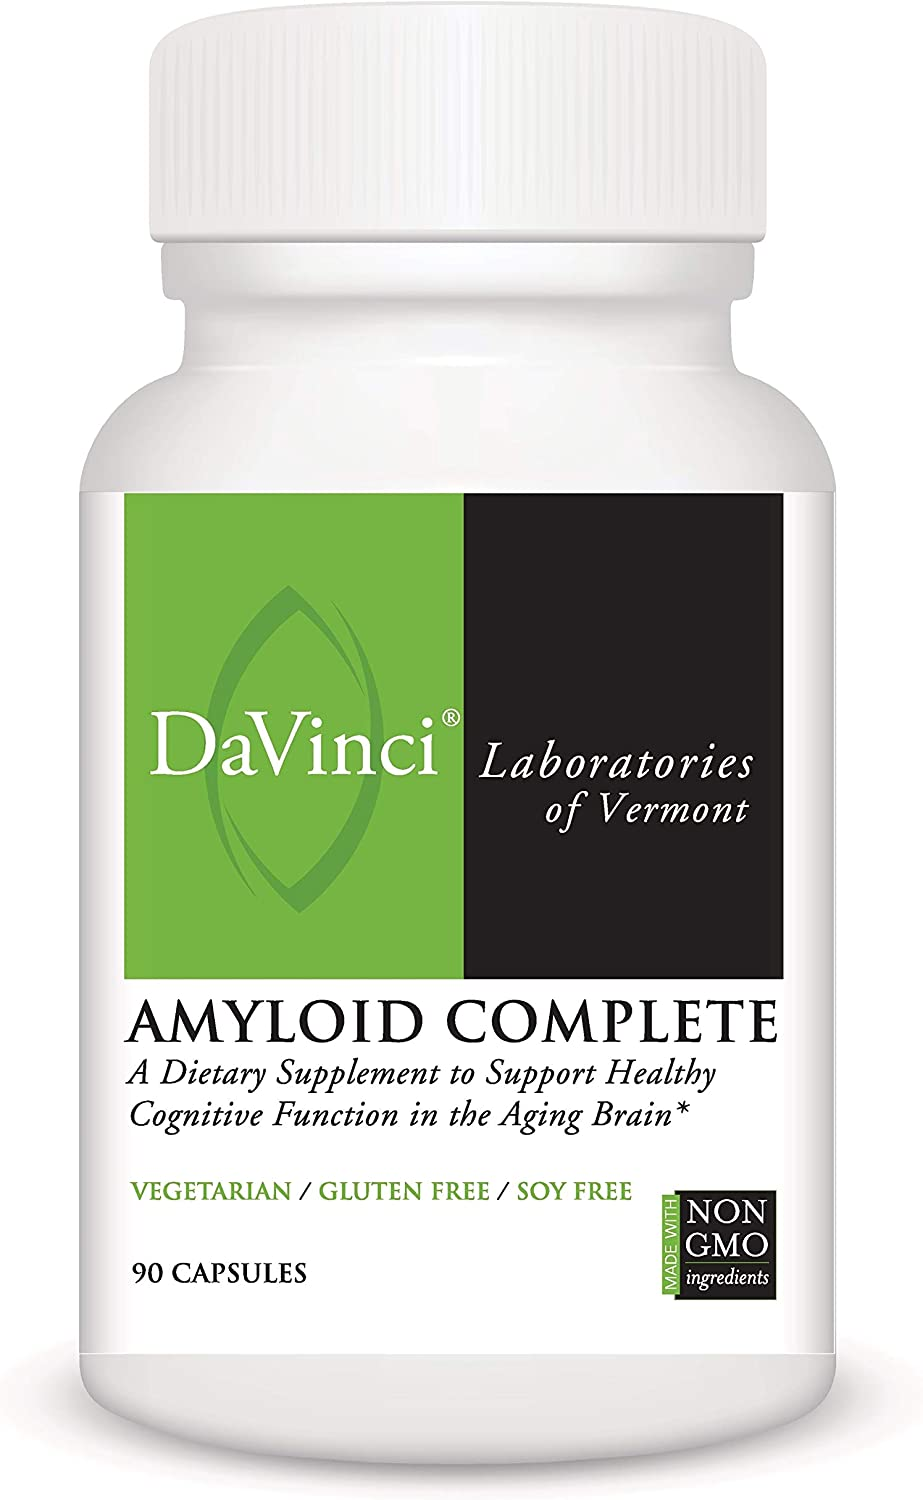 DaVinci Laboratories Amyloid Complete 90 Doctor Form - Limited Special Price Capsules Sales results No. 1